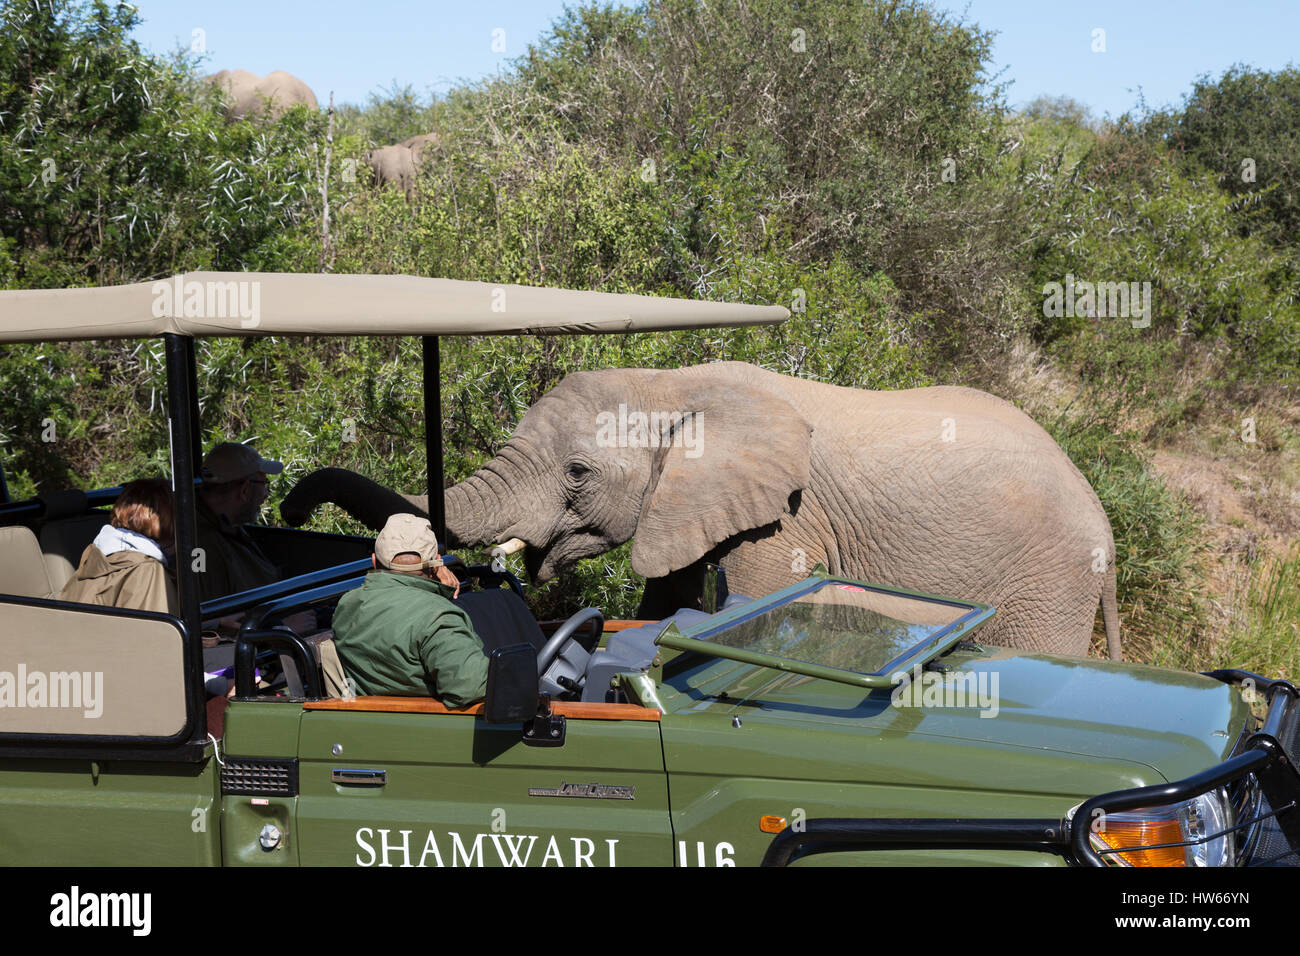 South Africa safari - elephant greeting tourists on a jeep safari, Shamwari Game Reserve, Eastern Cape, South Africa - Stock Image